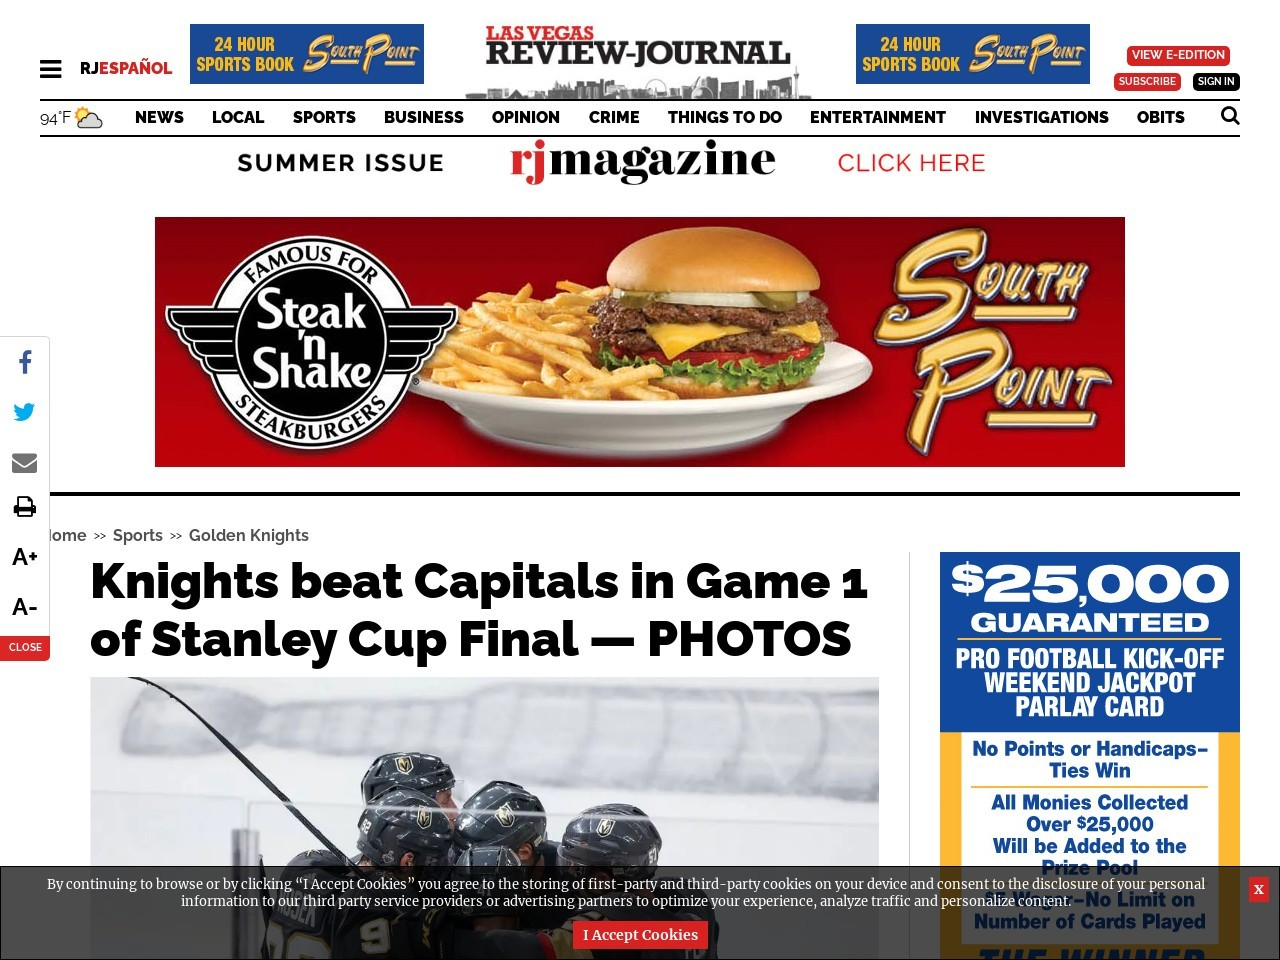 Knights beat Capitals in Game 1 of the Stanley Cup Final — PHOTOS